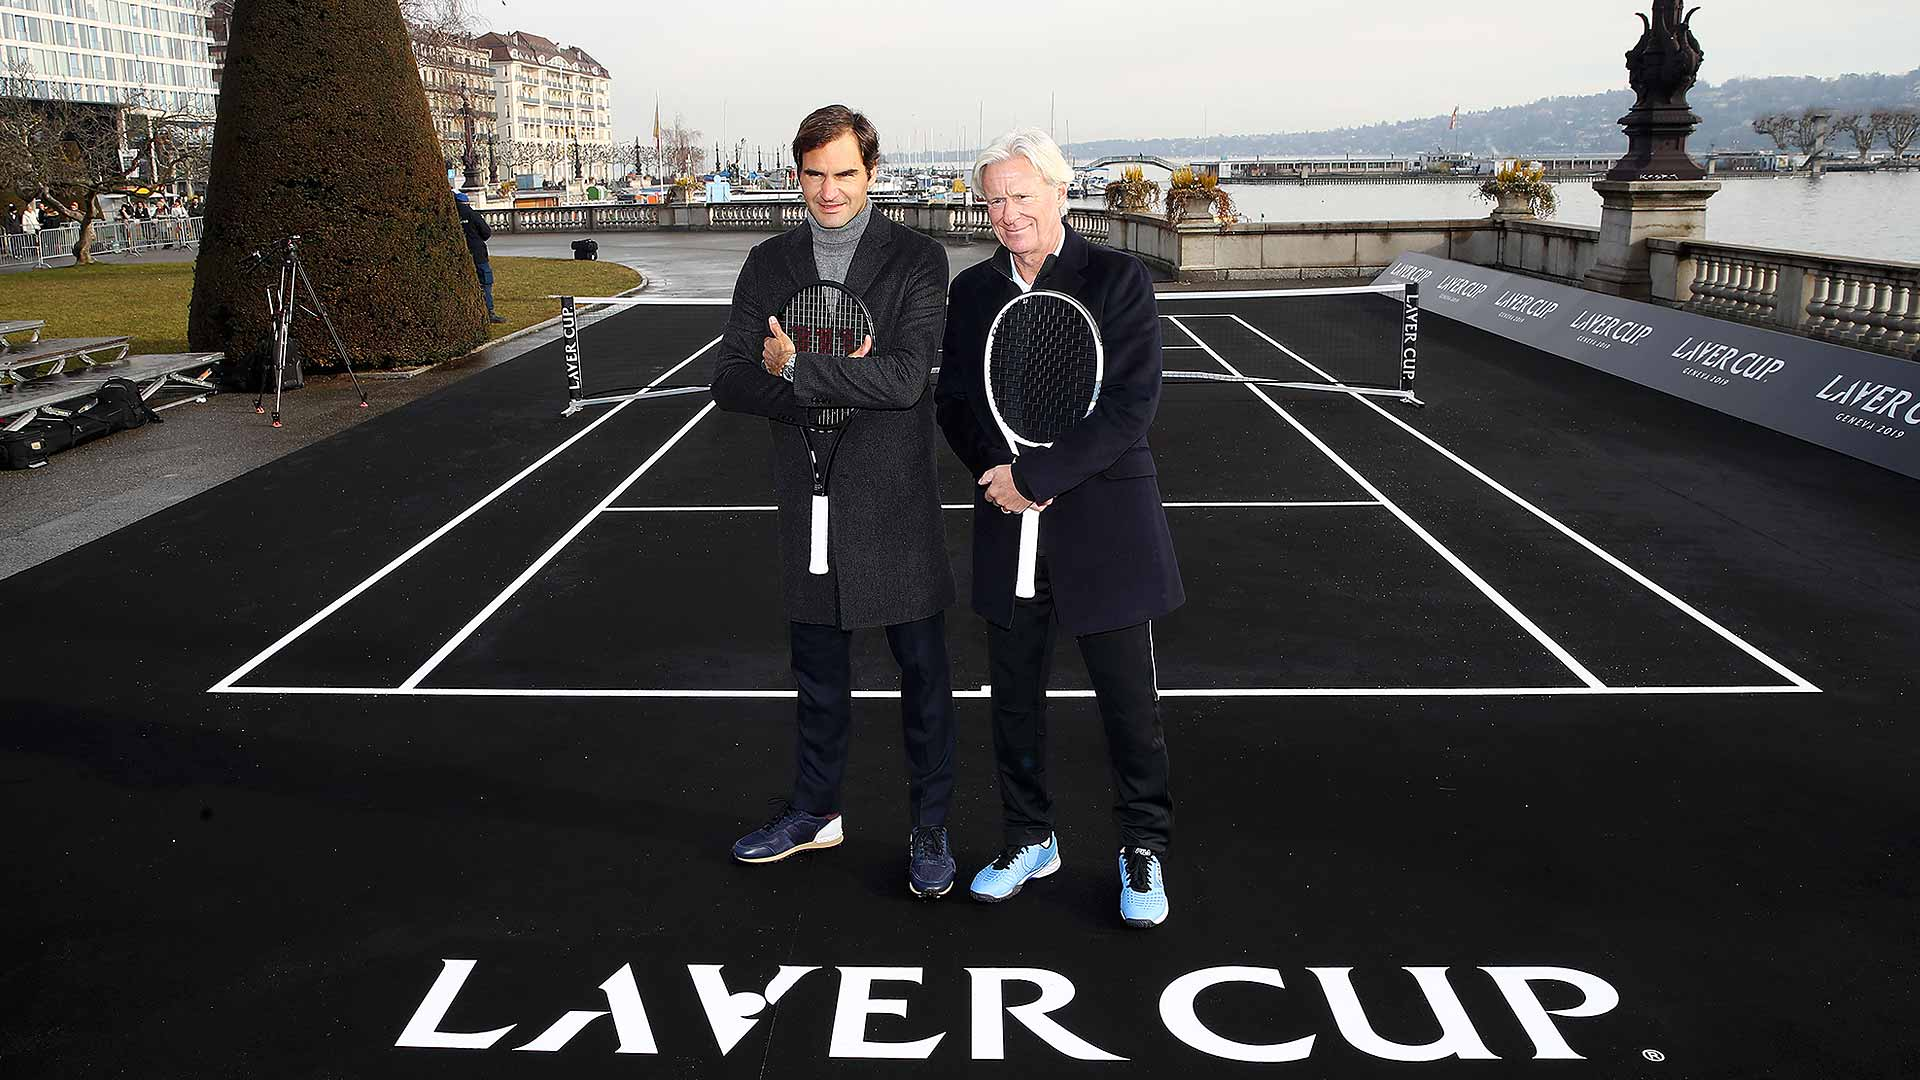 997bbf07cd ATP And Laver Cup Join Forces | South Africa Today - Sport